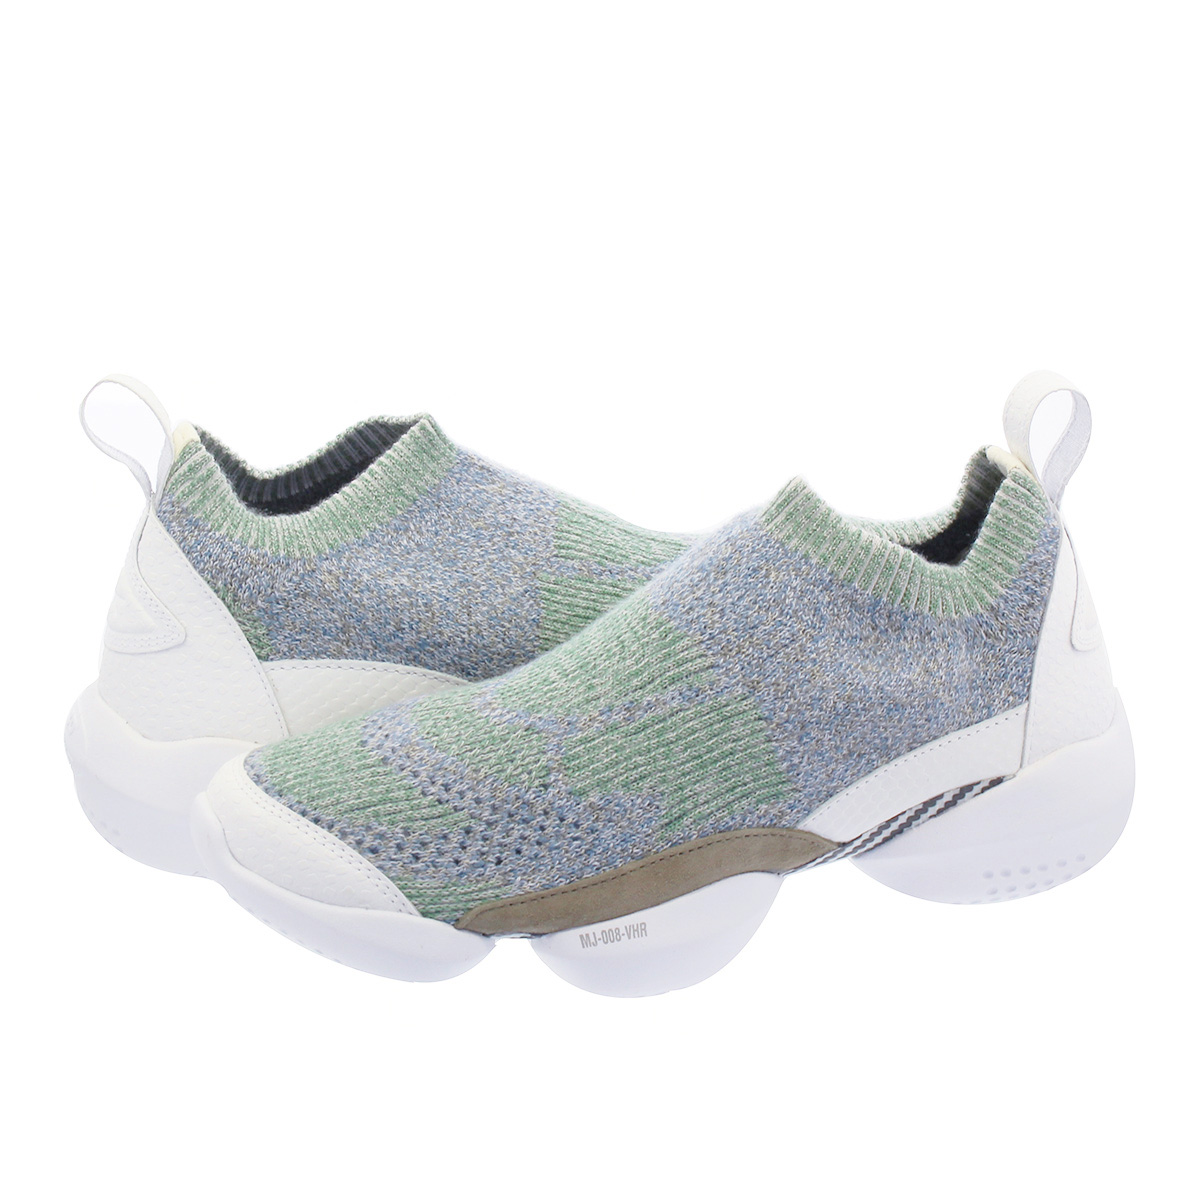 Reebok 3D OP. KNIT リーボック 3D OP. ニット MOON MIST/OATMEAL/WHITE cn3790